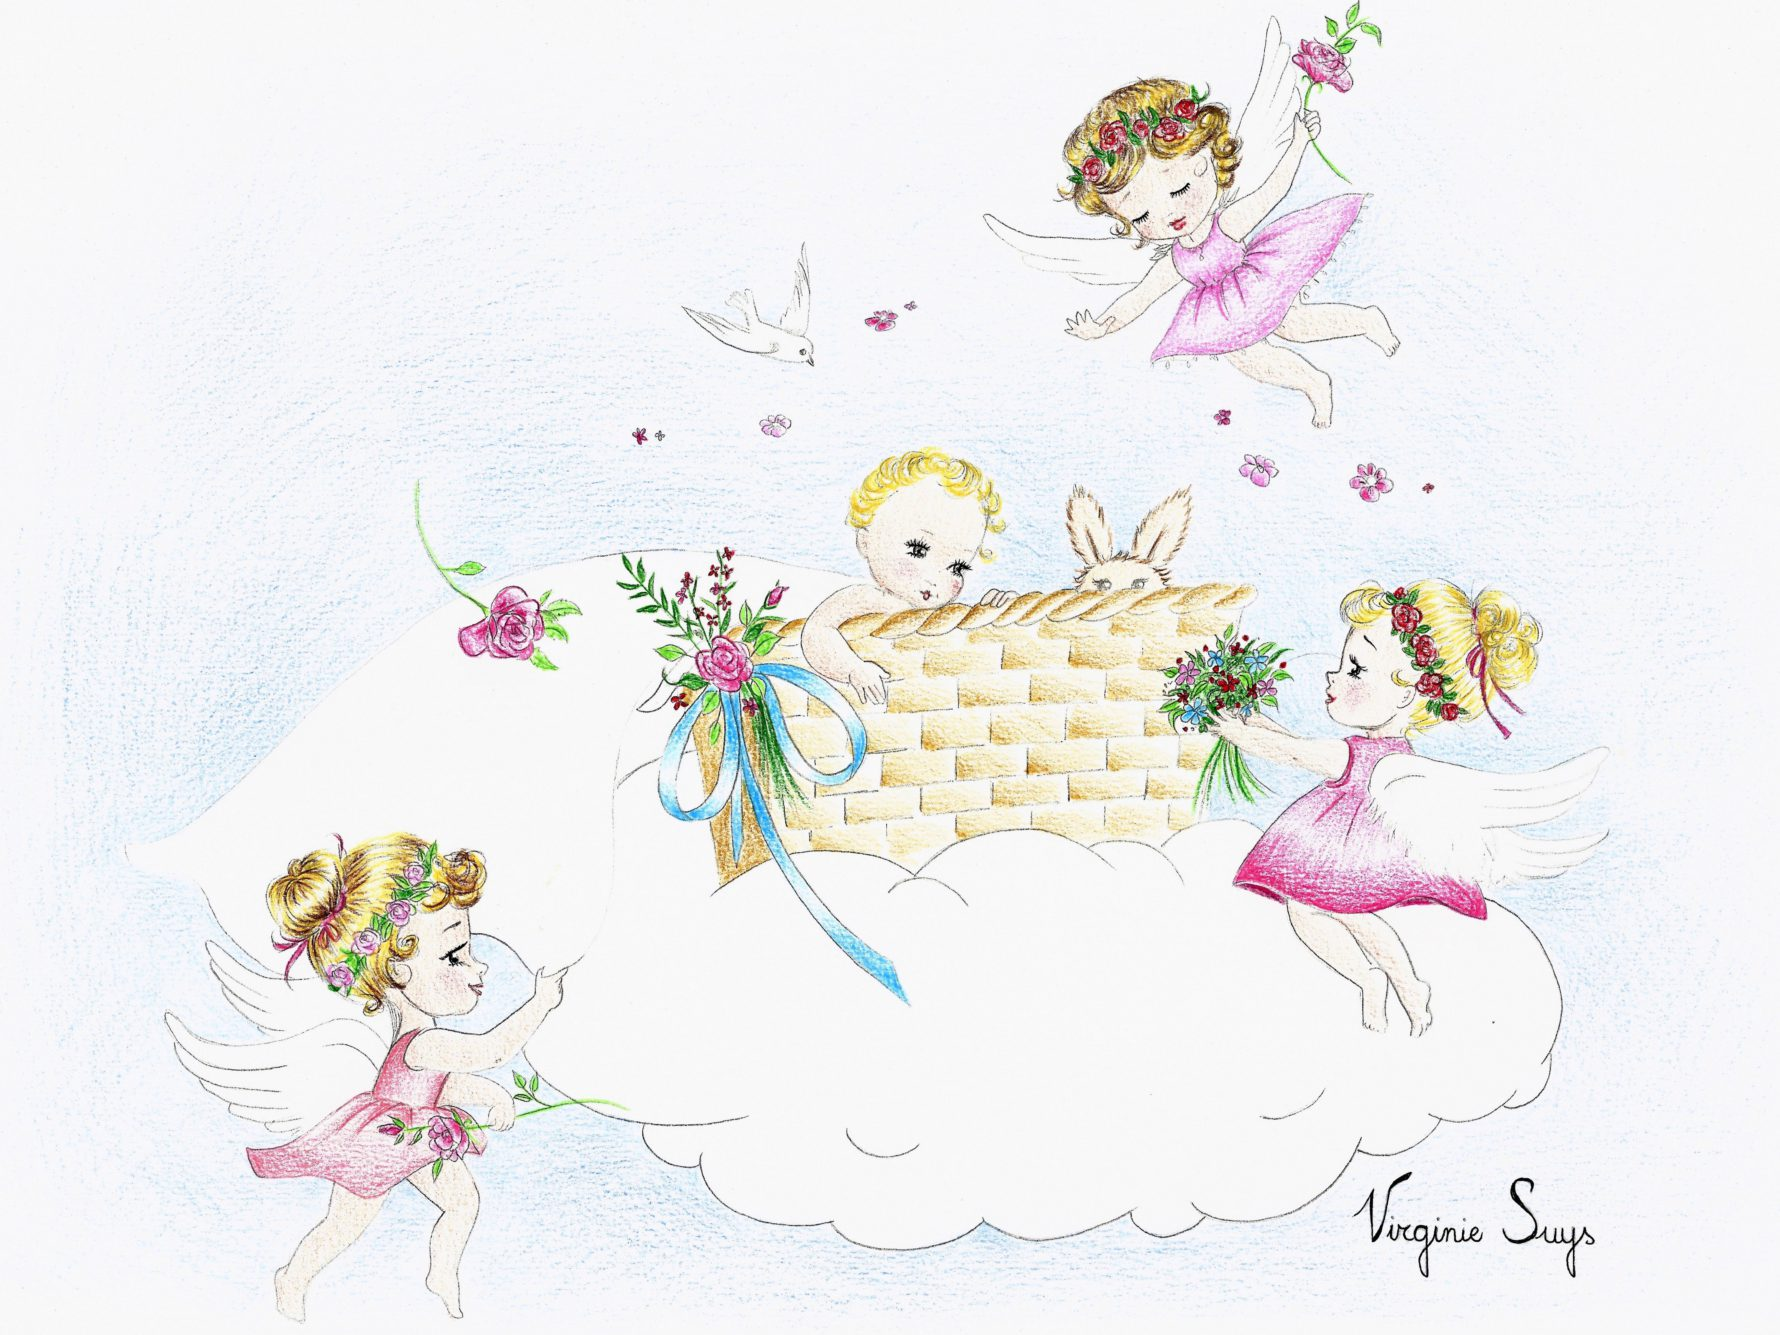 Virginie Suys Angels in heaven blues and pinks illustration